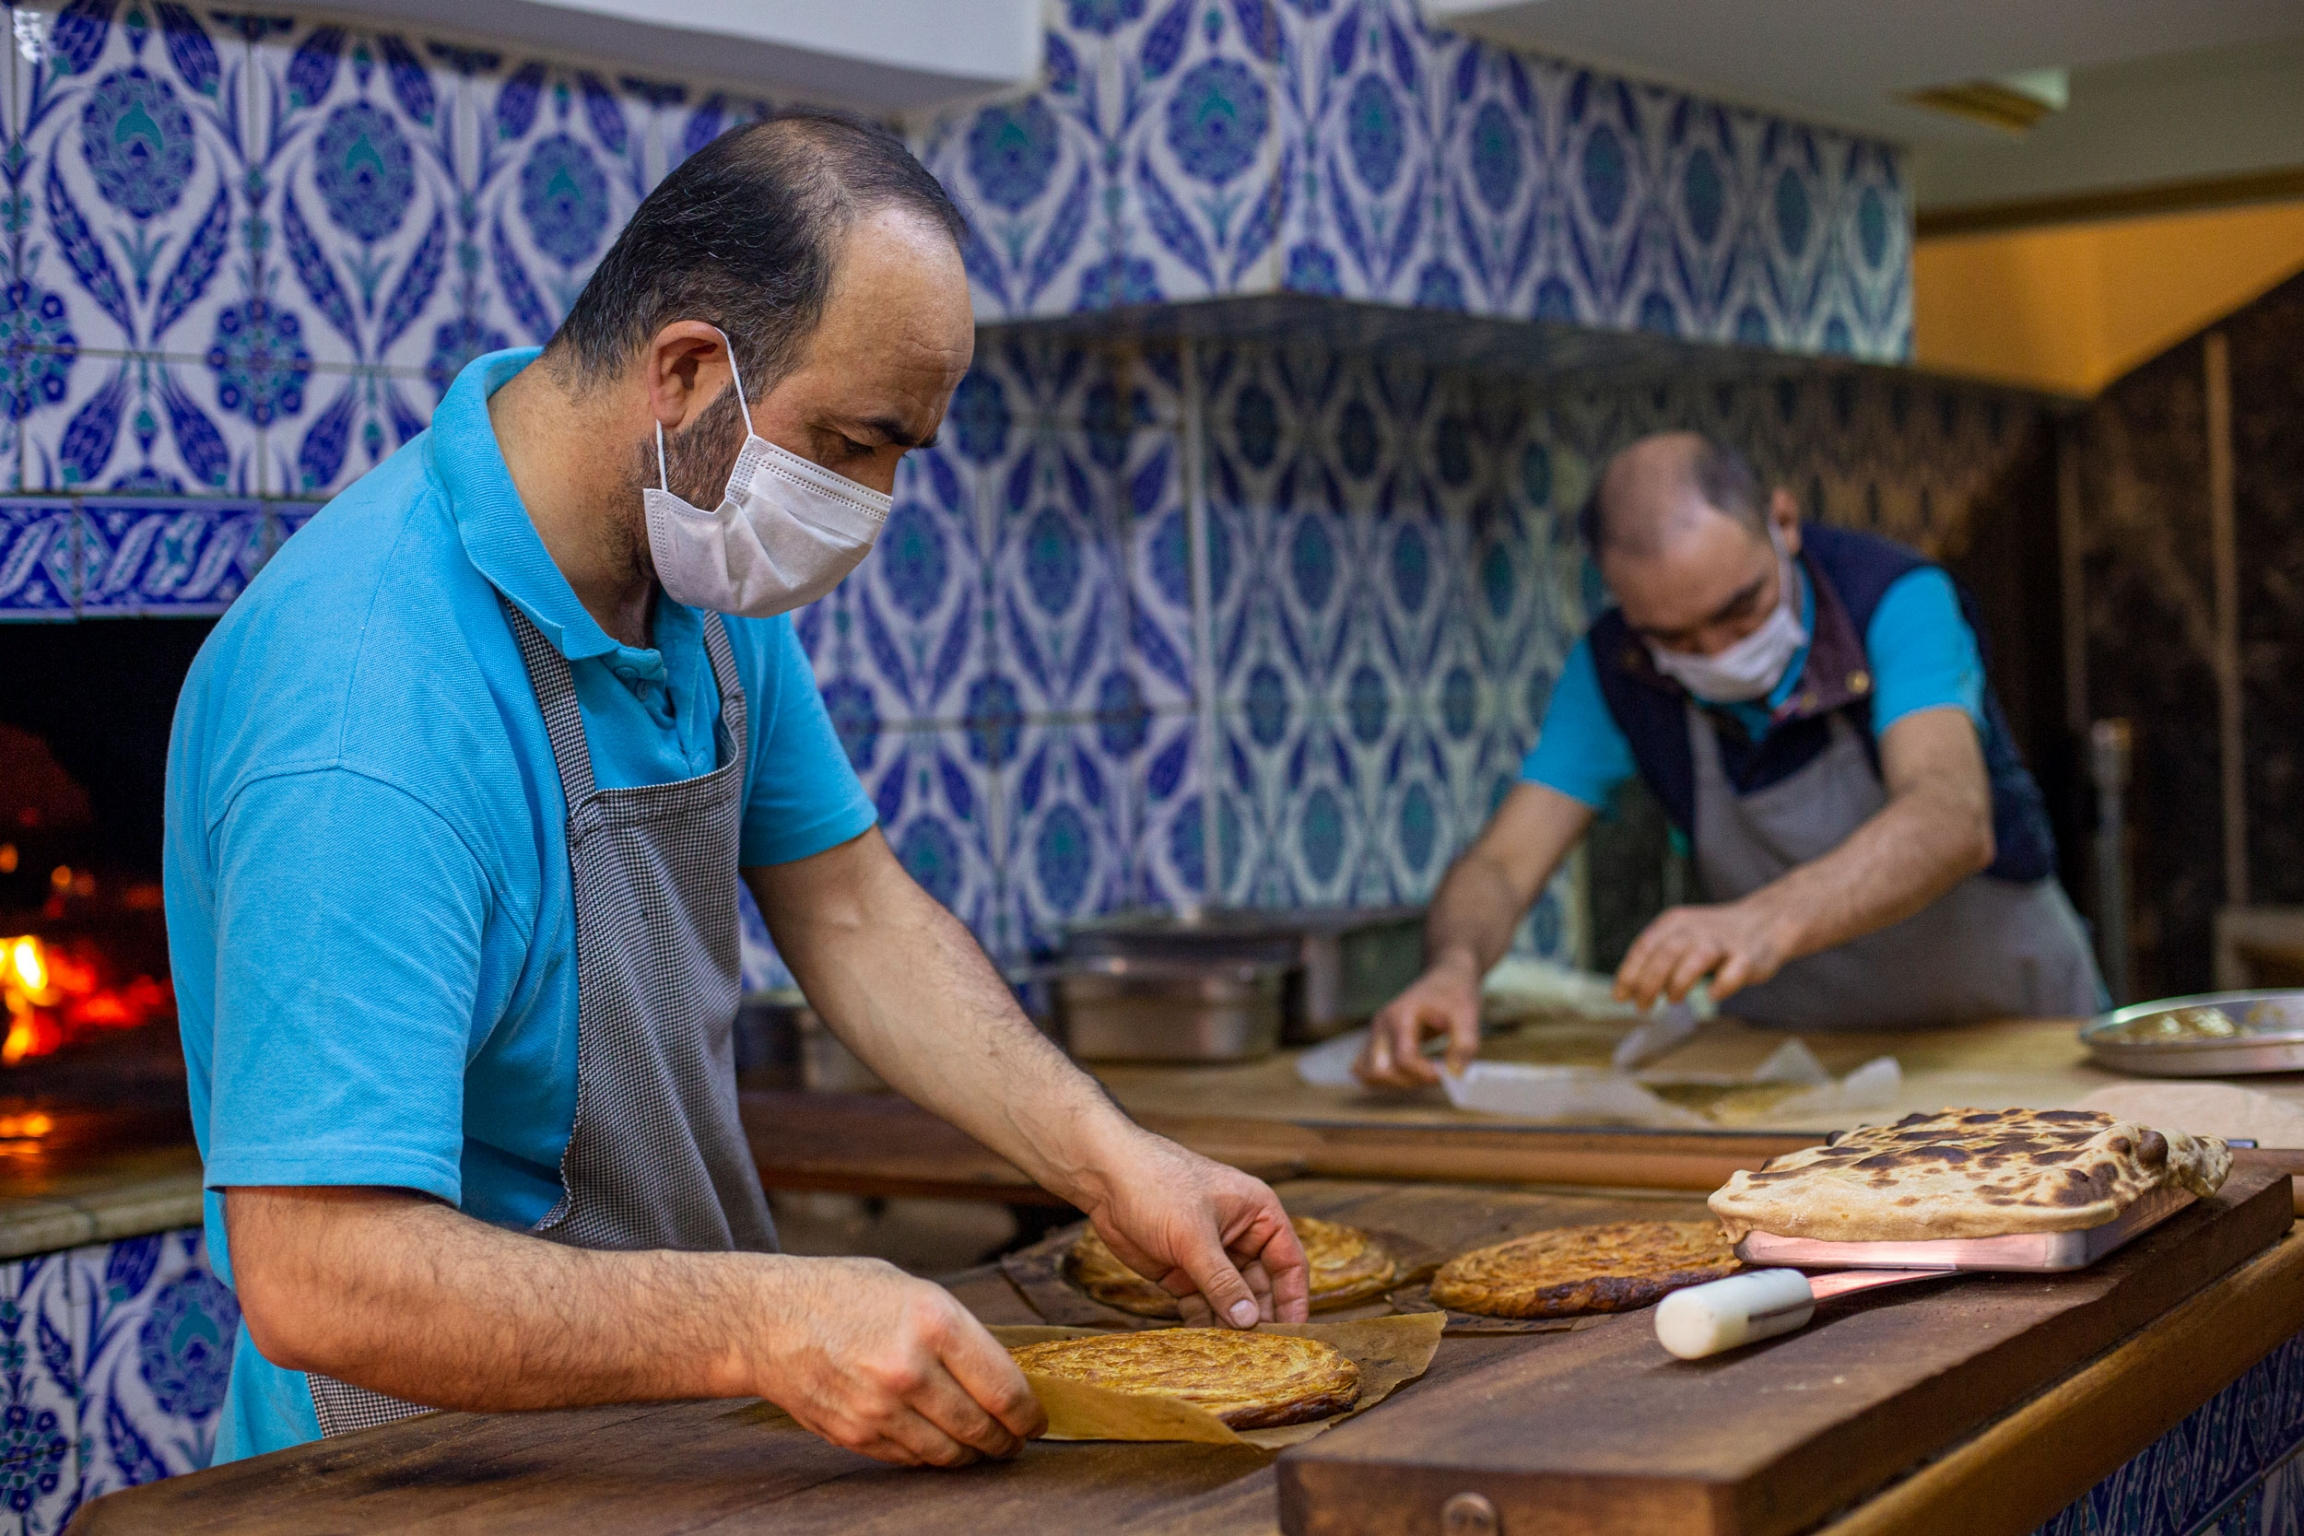 A man is shown wearing a blue shirt and gray aprin while handling a flat bread-like dish.